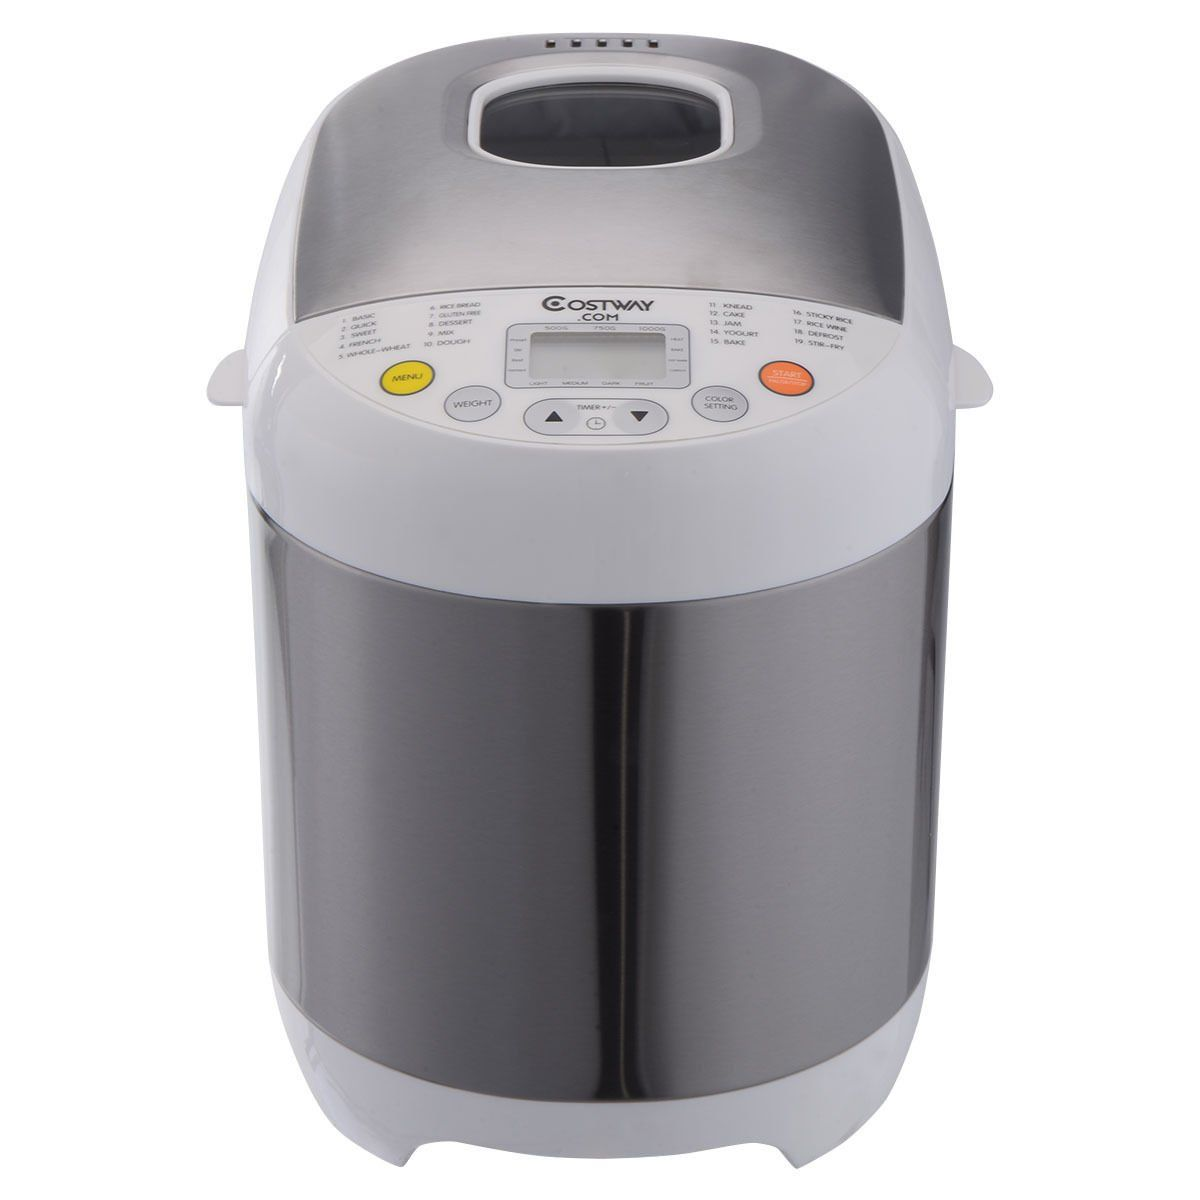 Costway Stainless Steel 2lb 550w Electric Bread Maker Machine Programmable Home Kitchen You Can Find More D